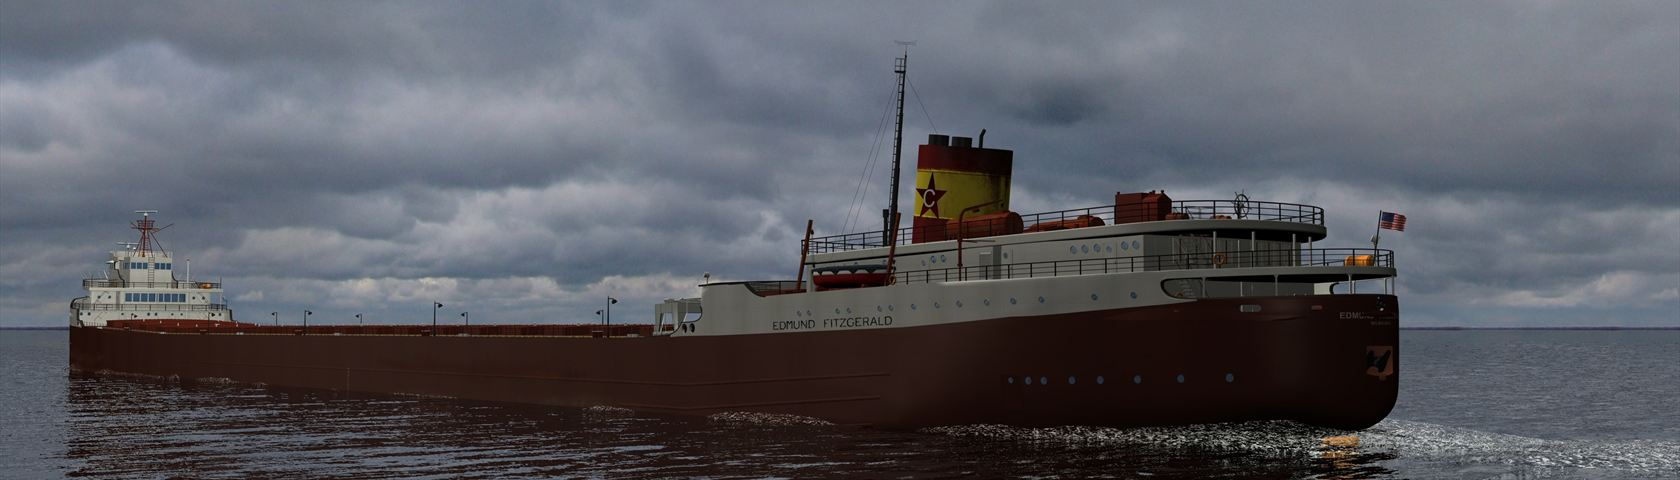 The Edmund Fitzgerald